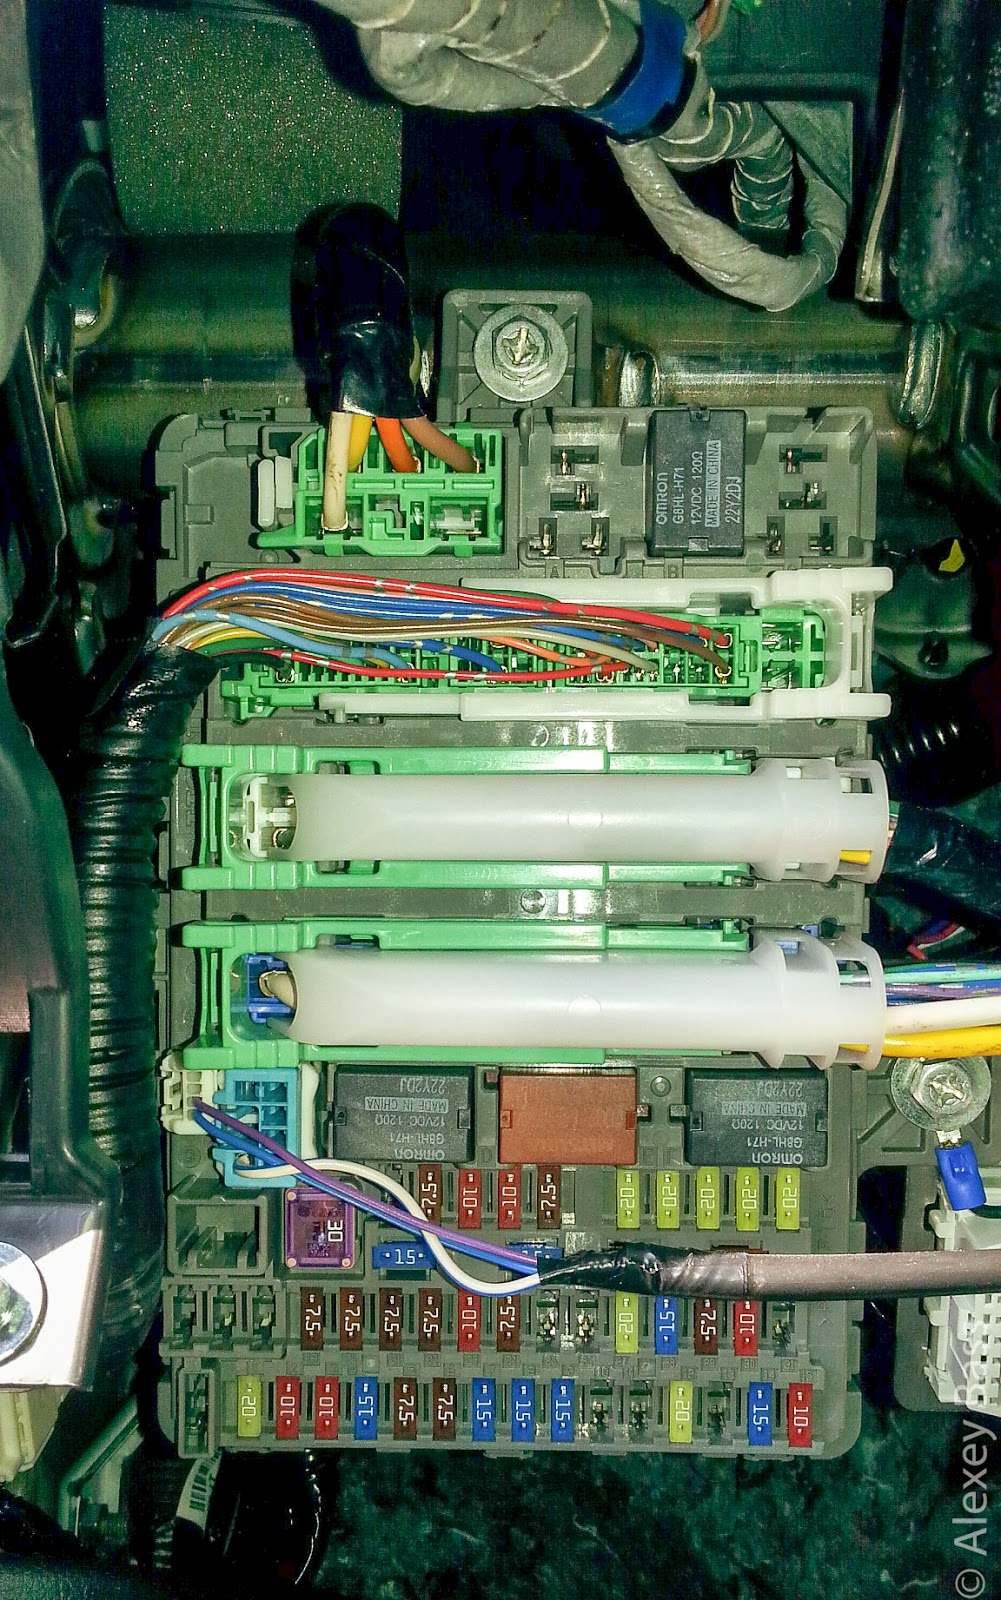 Under Dash Fuse Relay Box Circuit Diagram Schema 04 Honda Civic In Help Finding Connector For 9th C1105